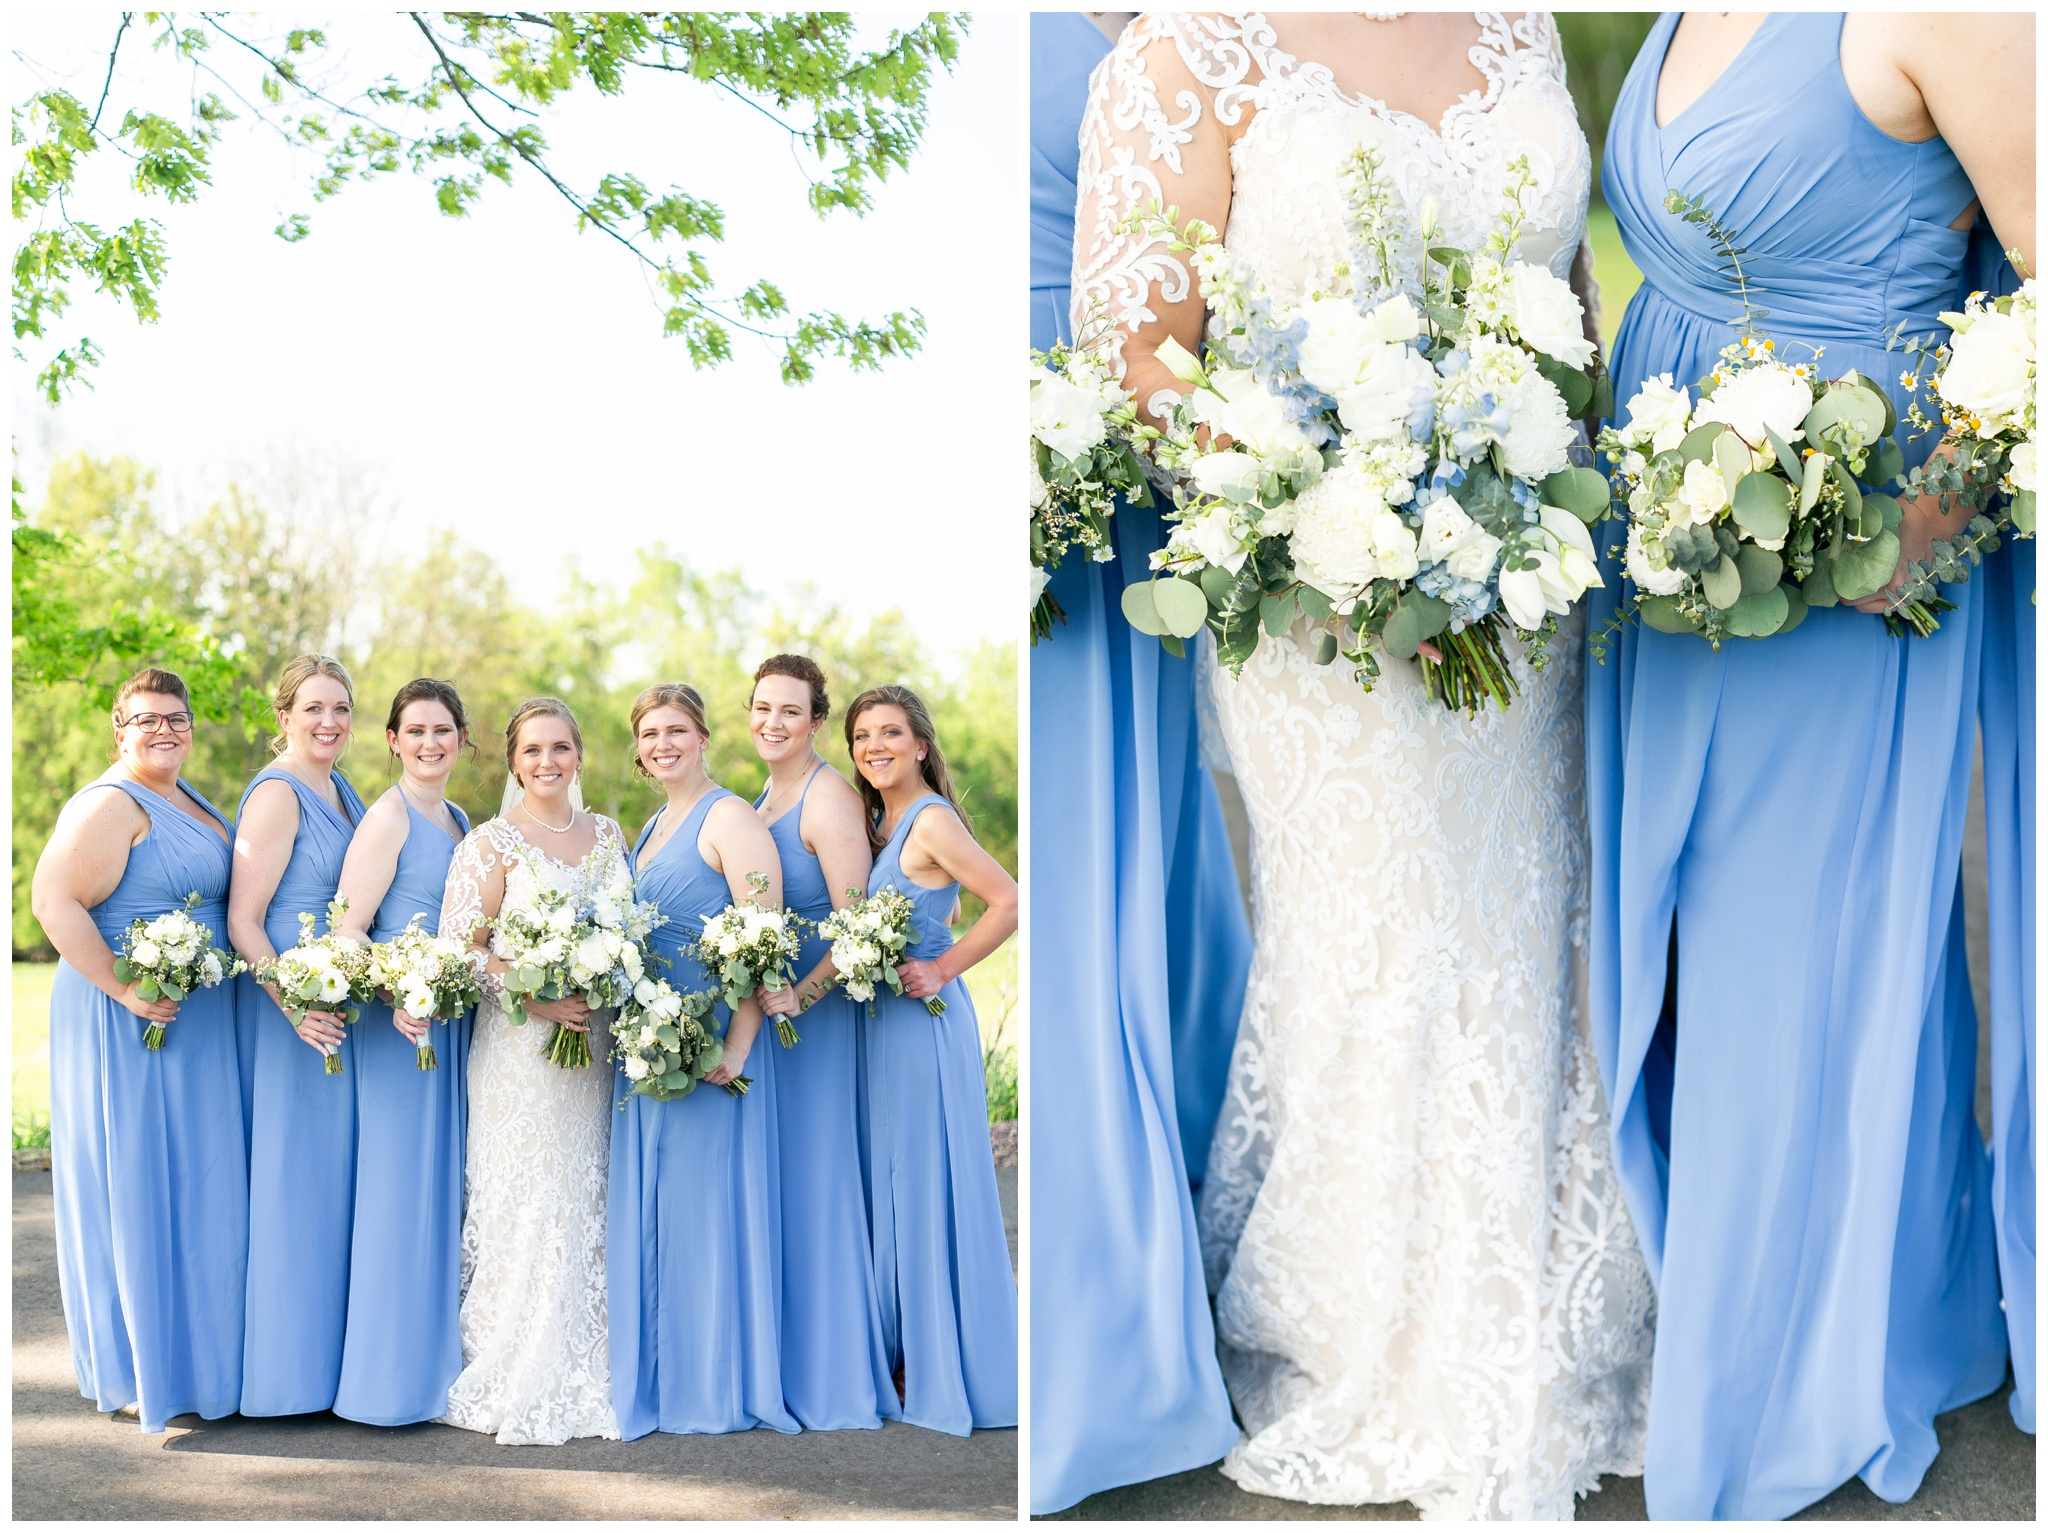 vennebu_hill_baraboo_wisconsin_wedding_madison_wisconsin_wedding_photographers_3028.jpg